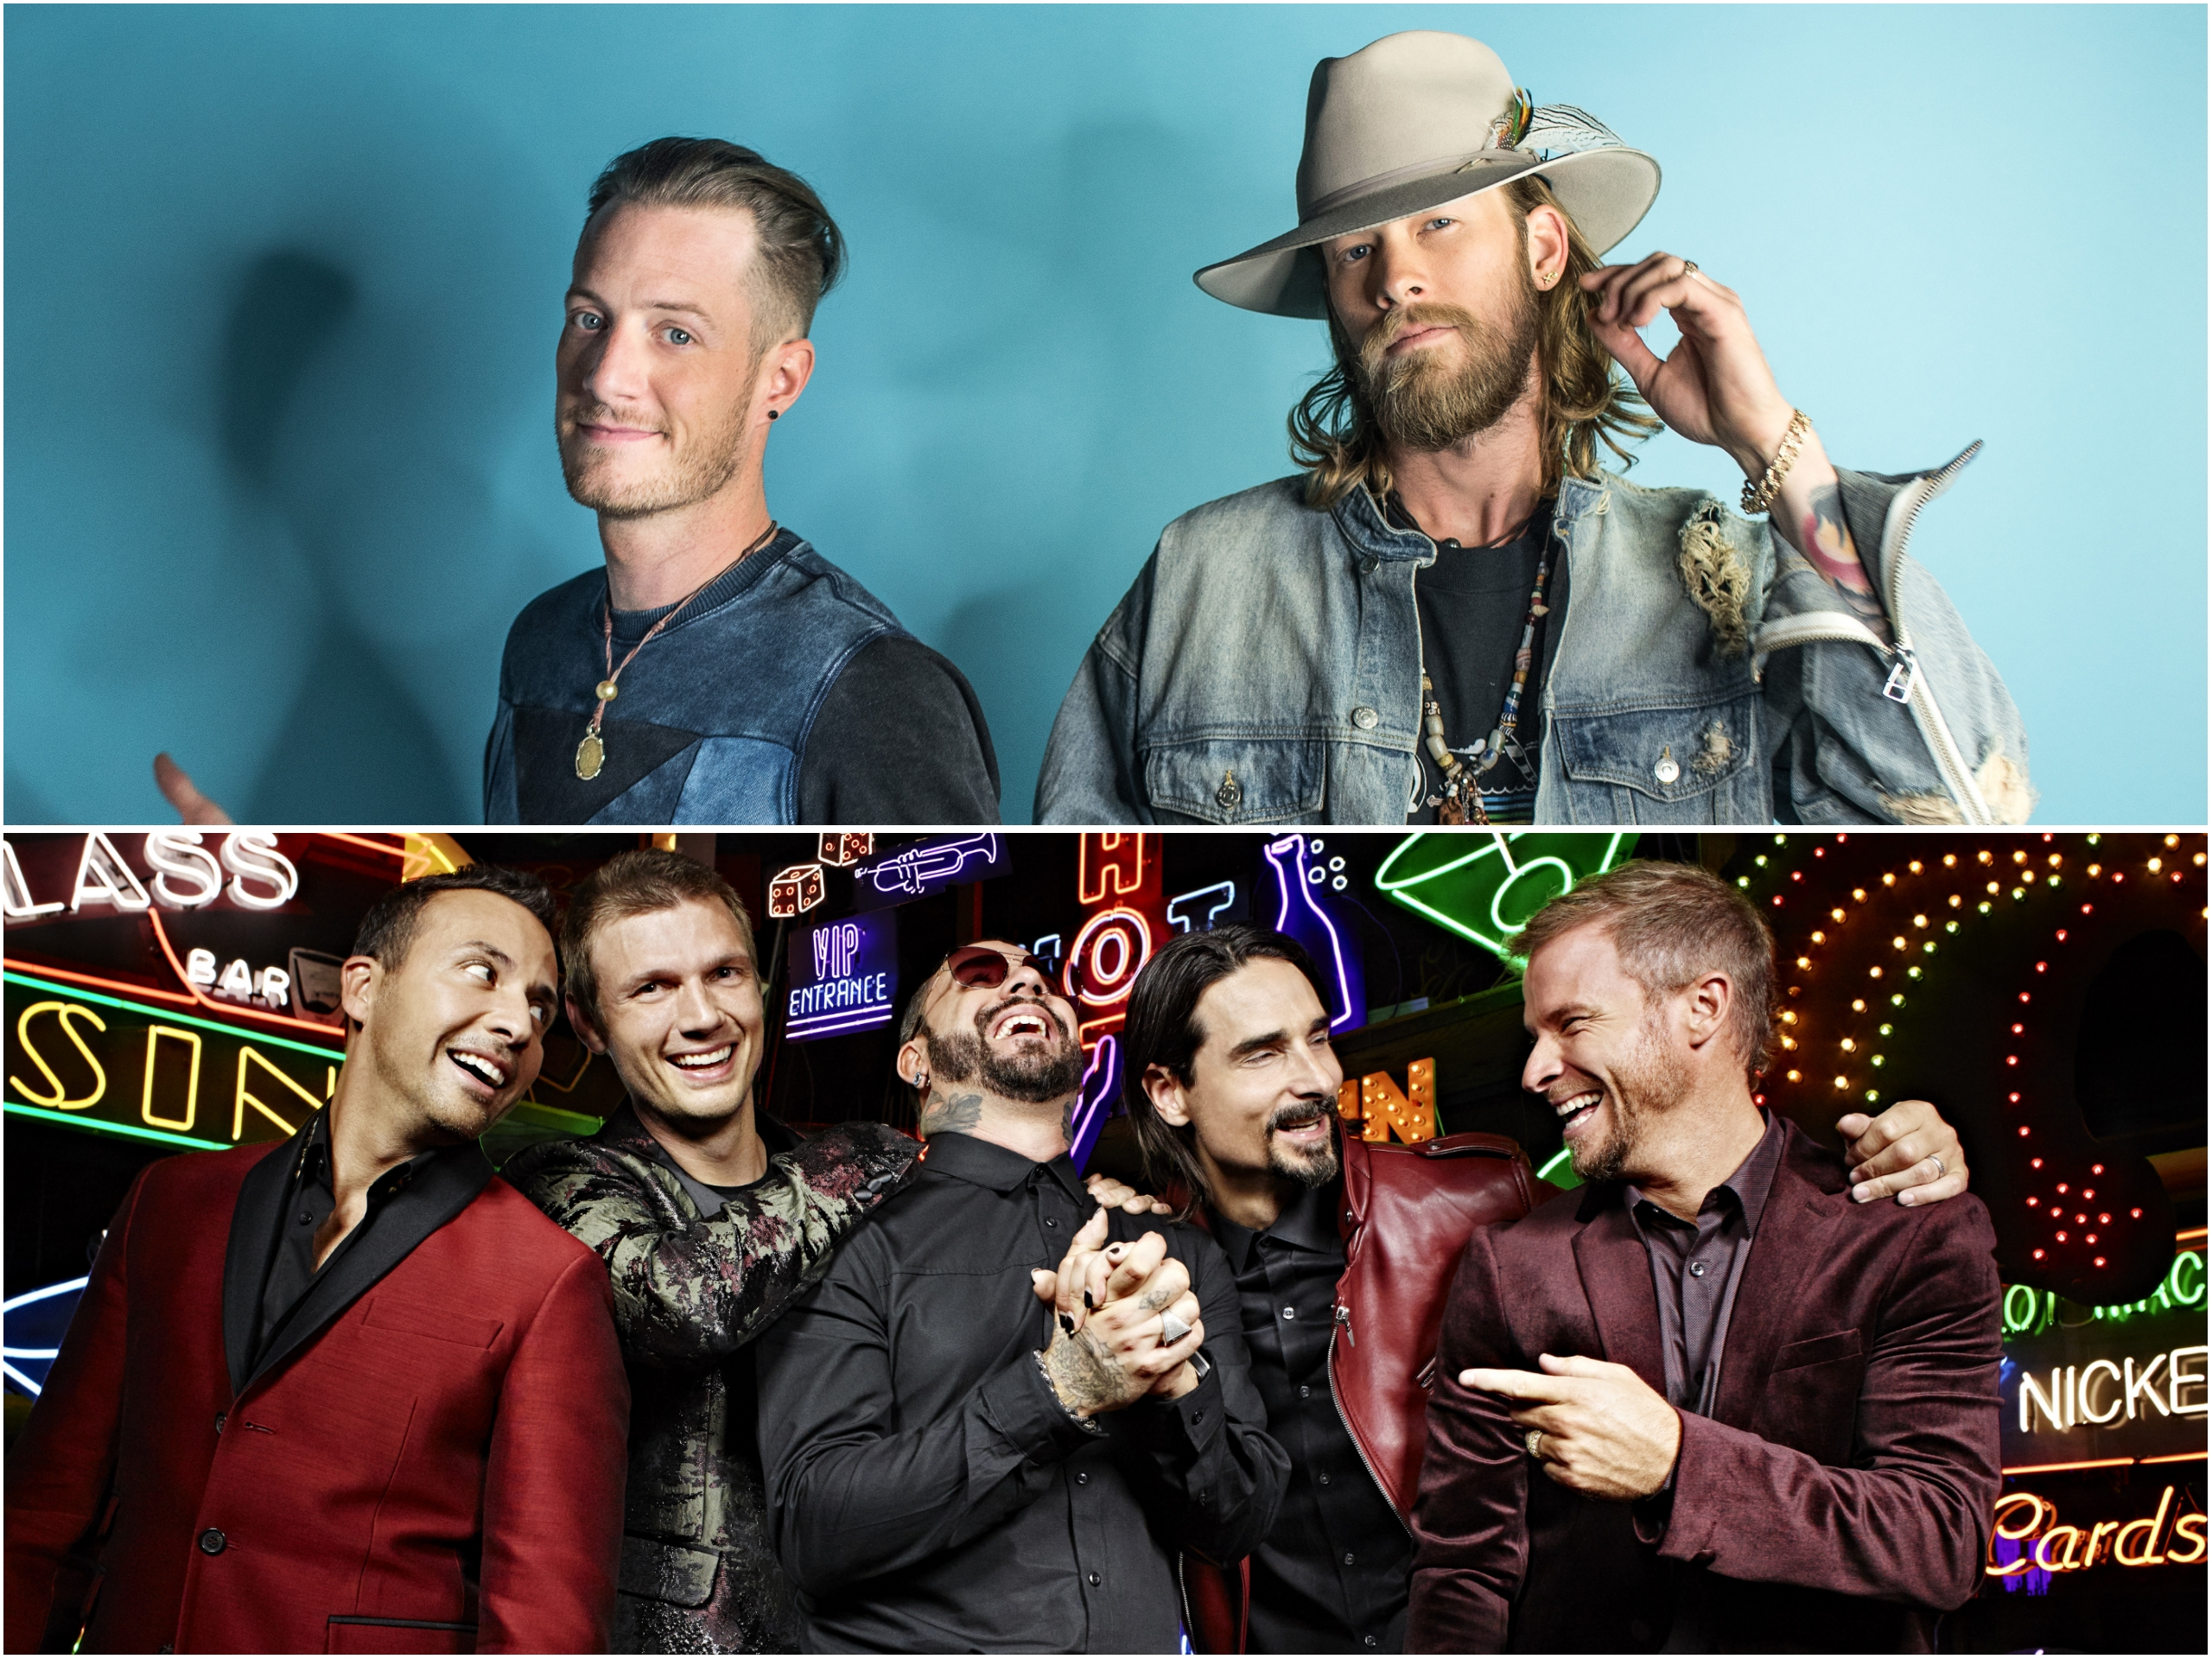 Florida Georgia Line and Backstreet Boys to Appear on CMT Crossroads